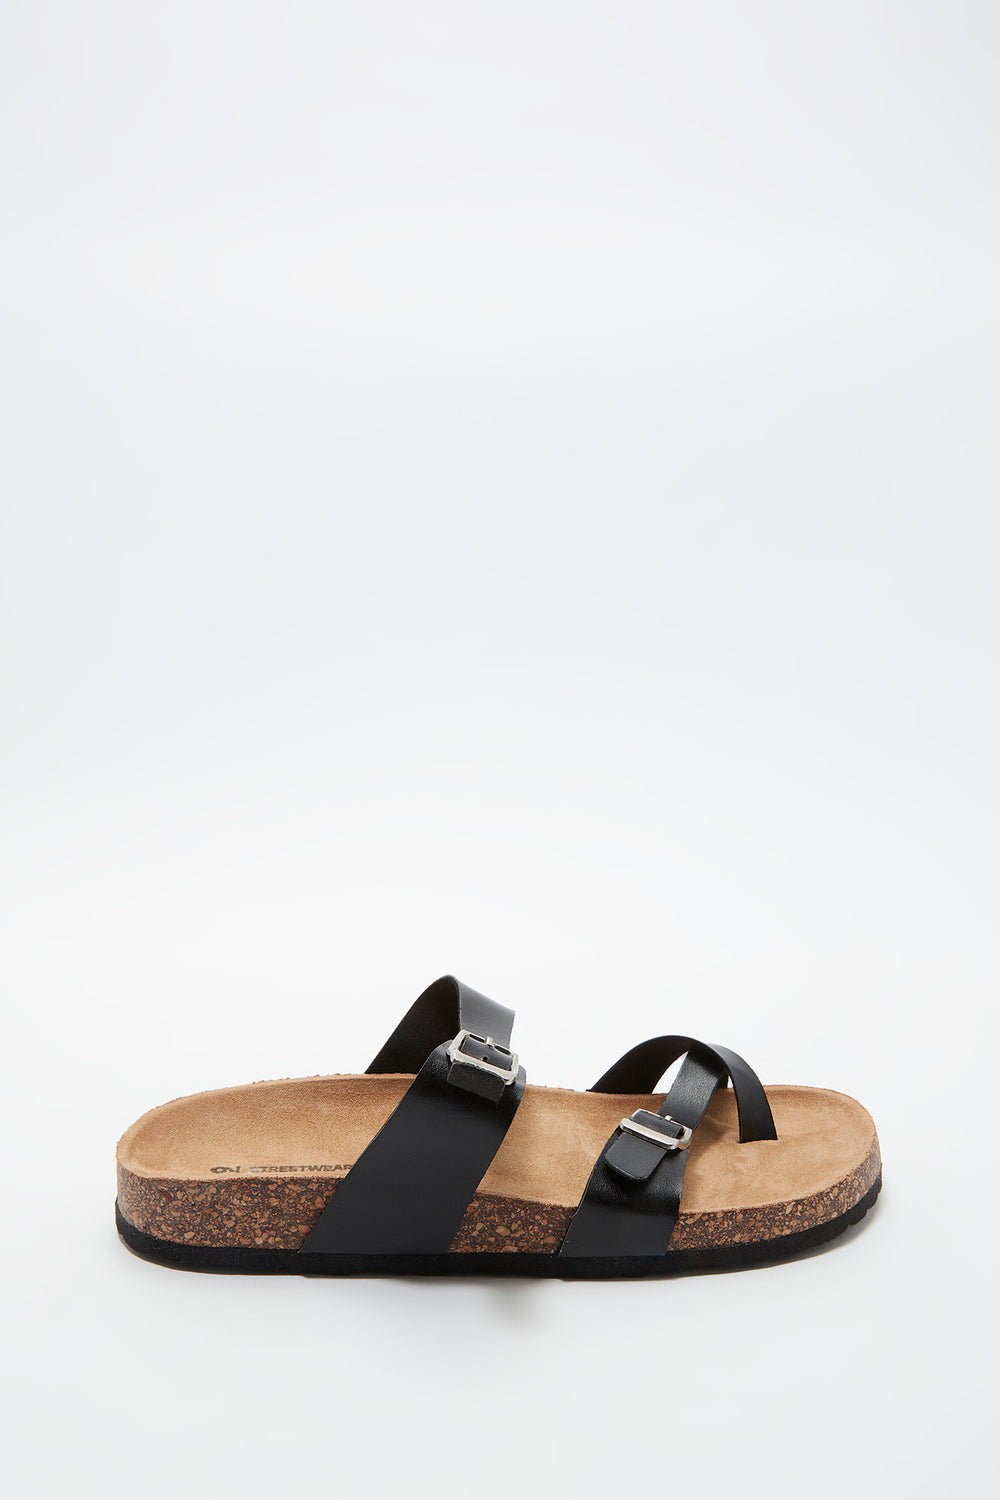 Dual Buckle Strap Toe Piece Slide Plaid